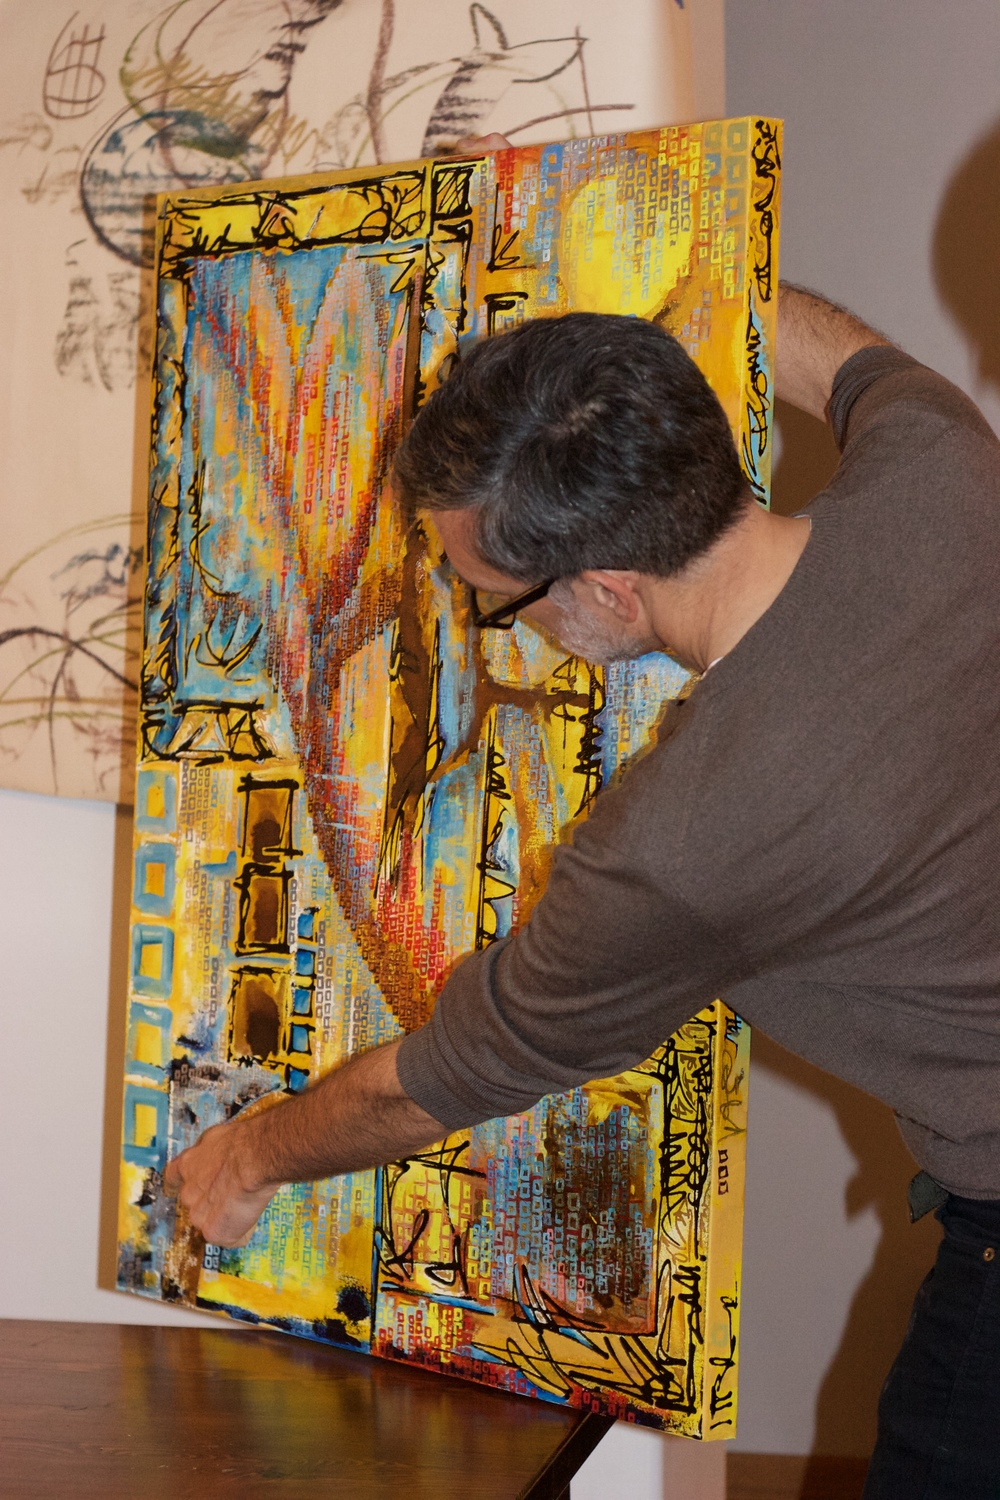 Scott Burnett illustrating a point via one of his paintings.